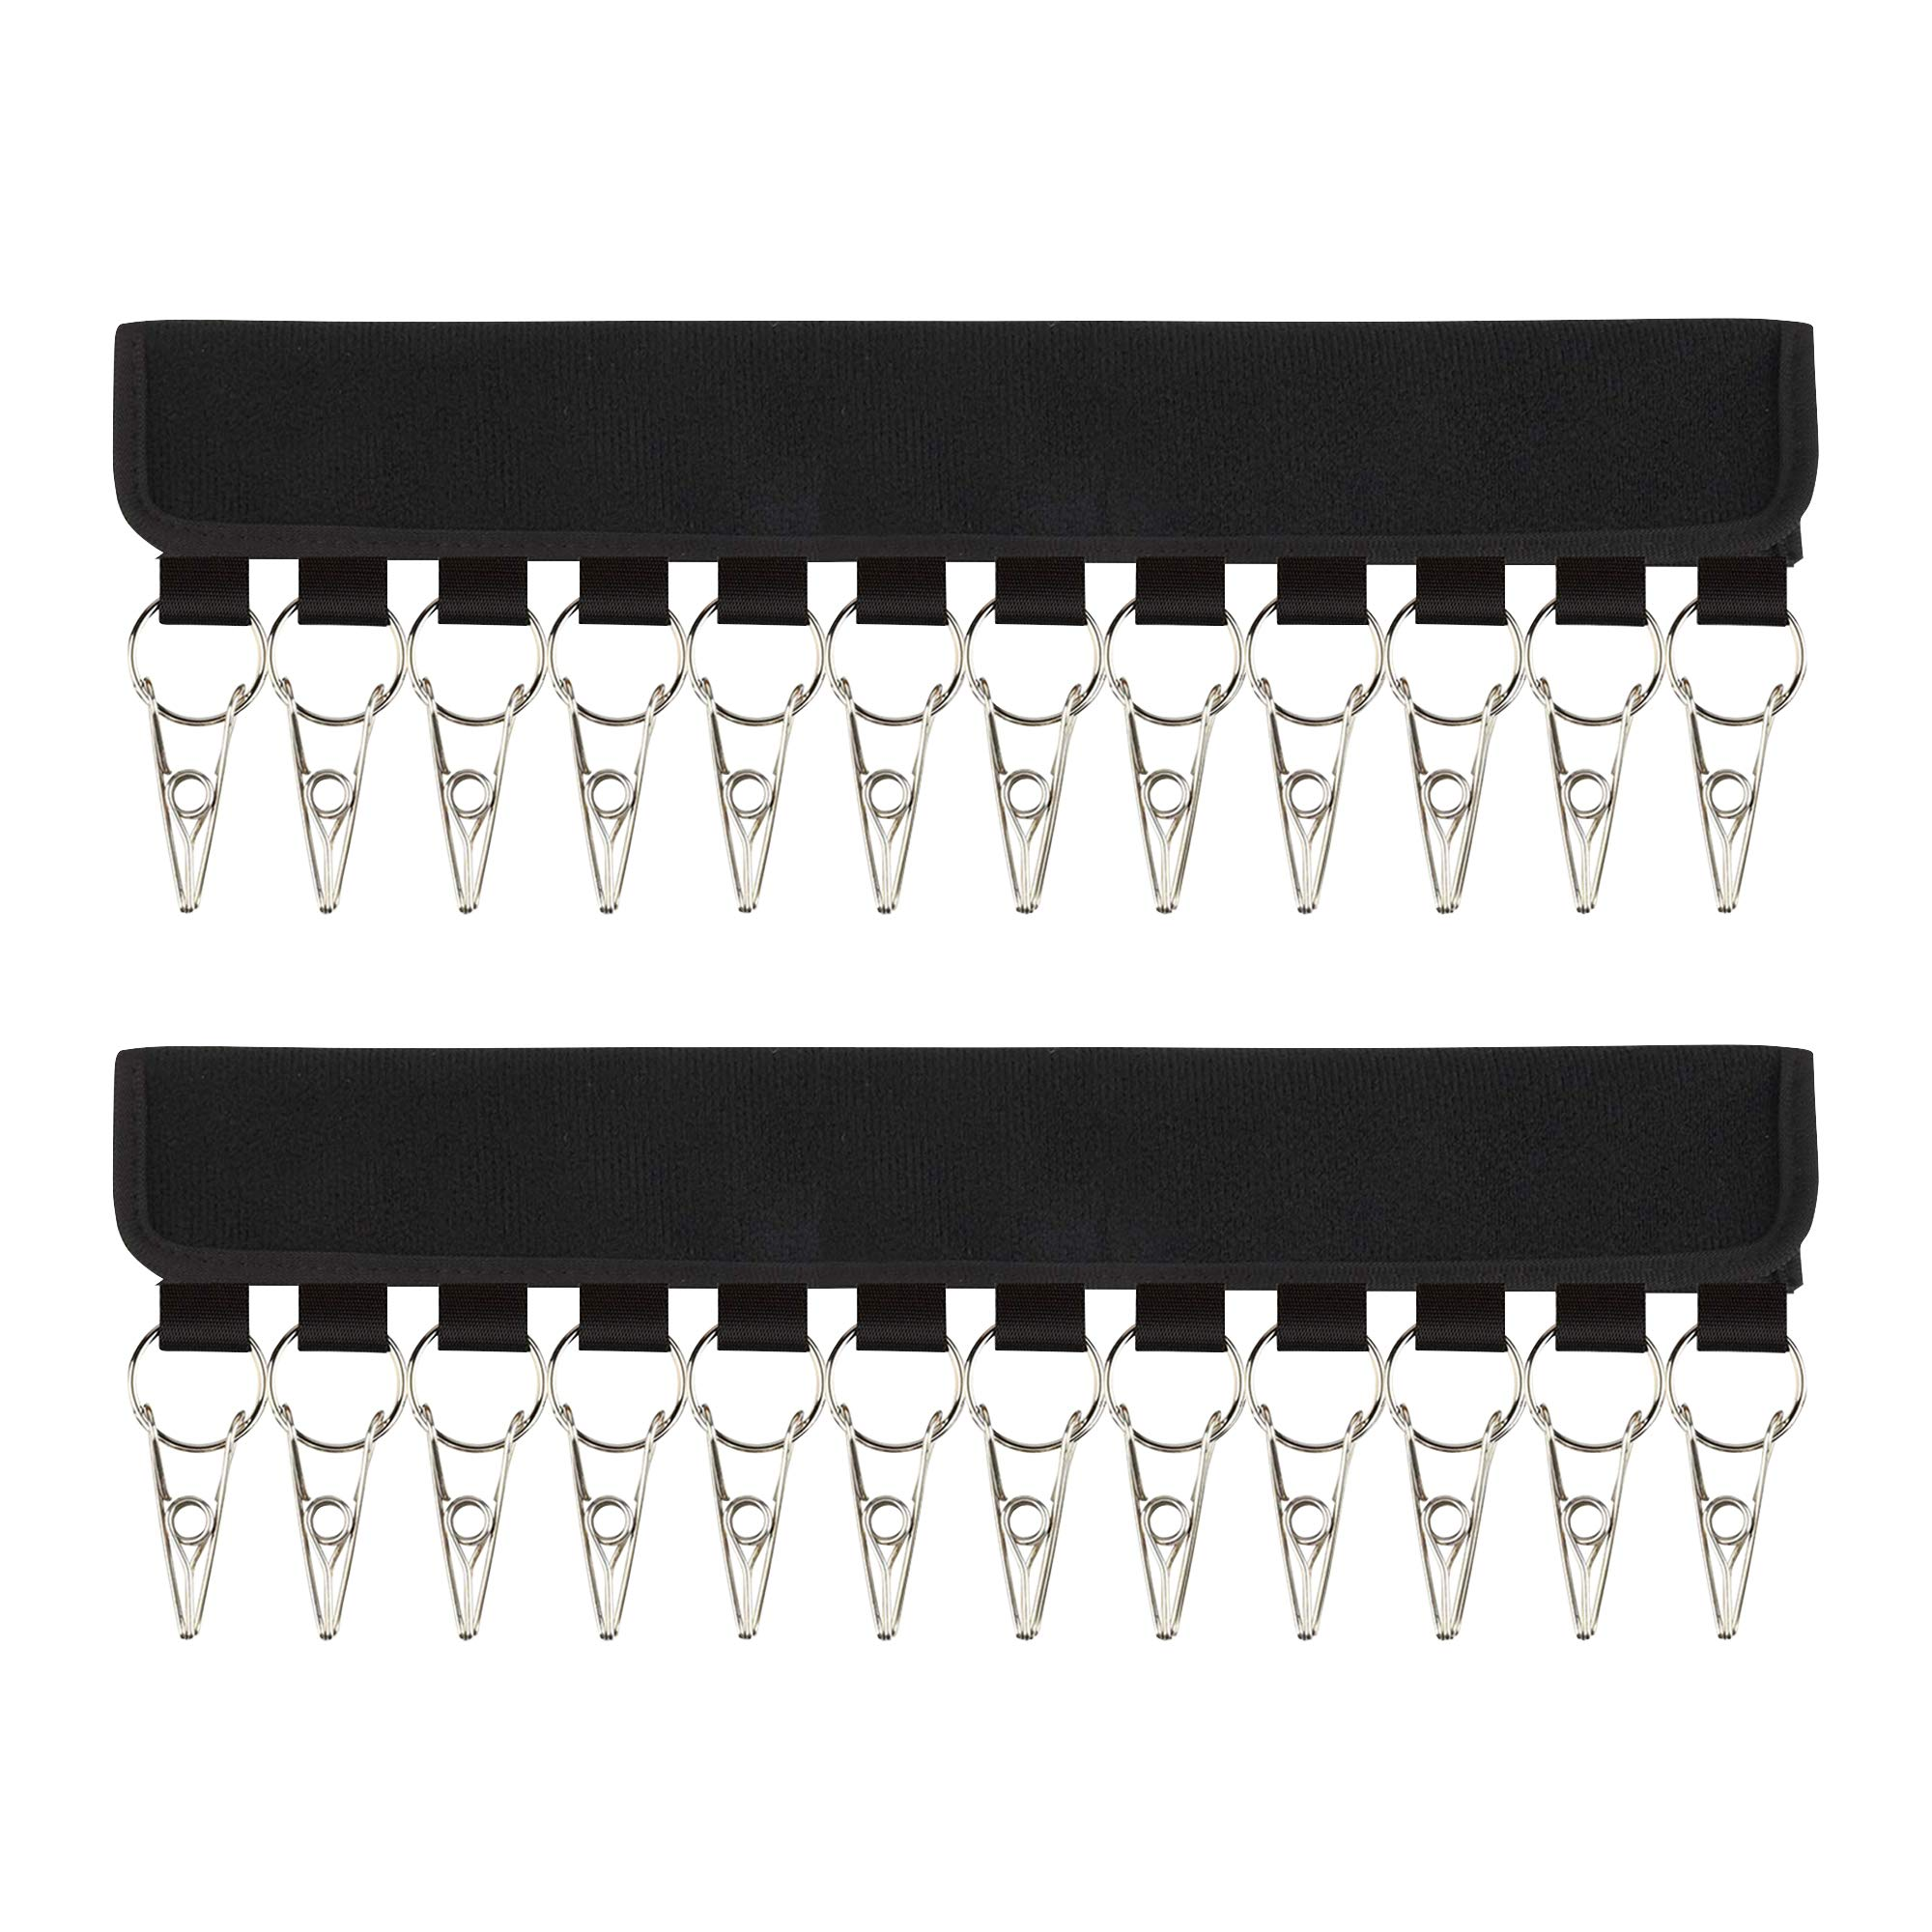 B.SHINE Hat Rack Cap Organizer - 12 Clips Hanging Baseball Caps Holder with Dust Cover, up to 24 Hats